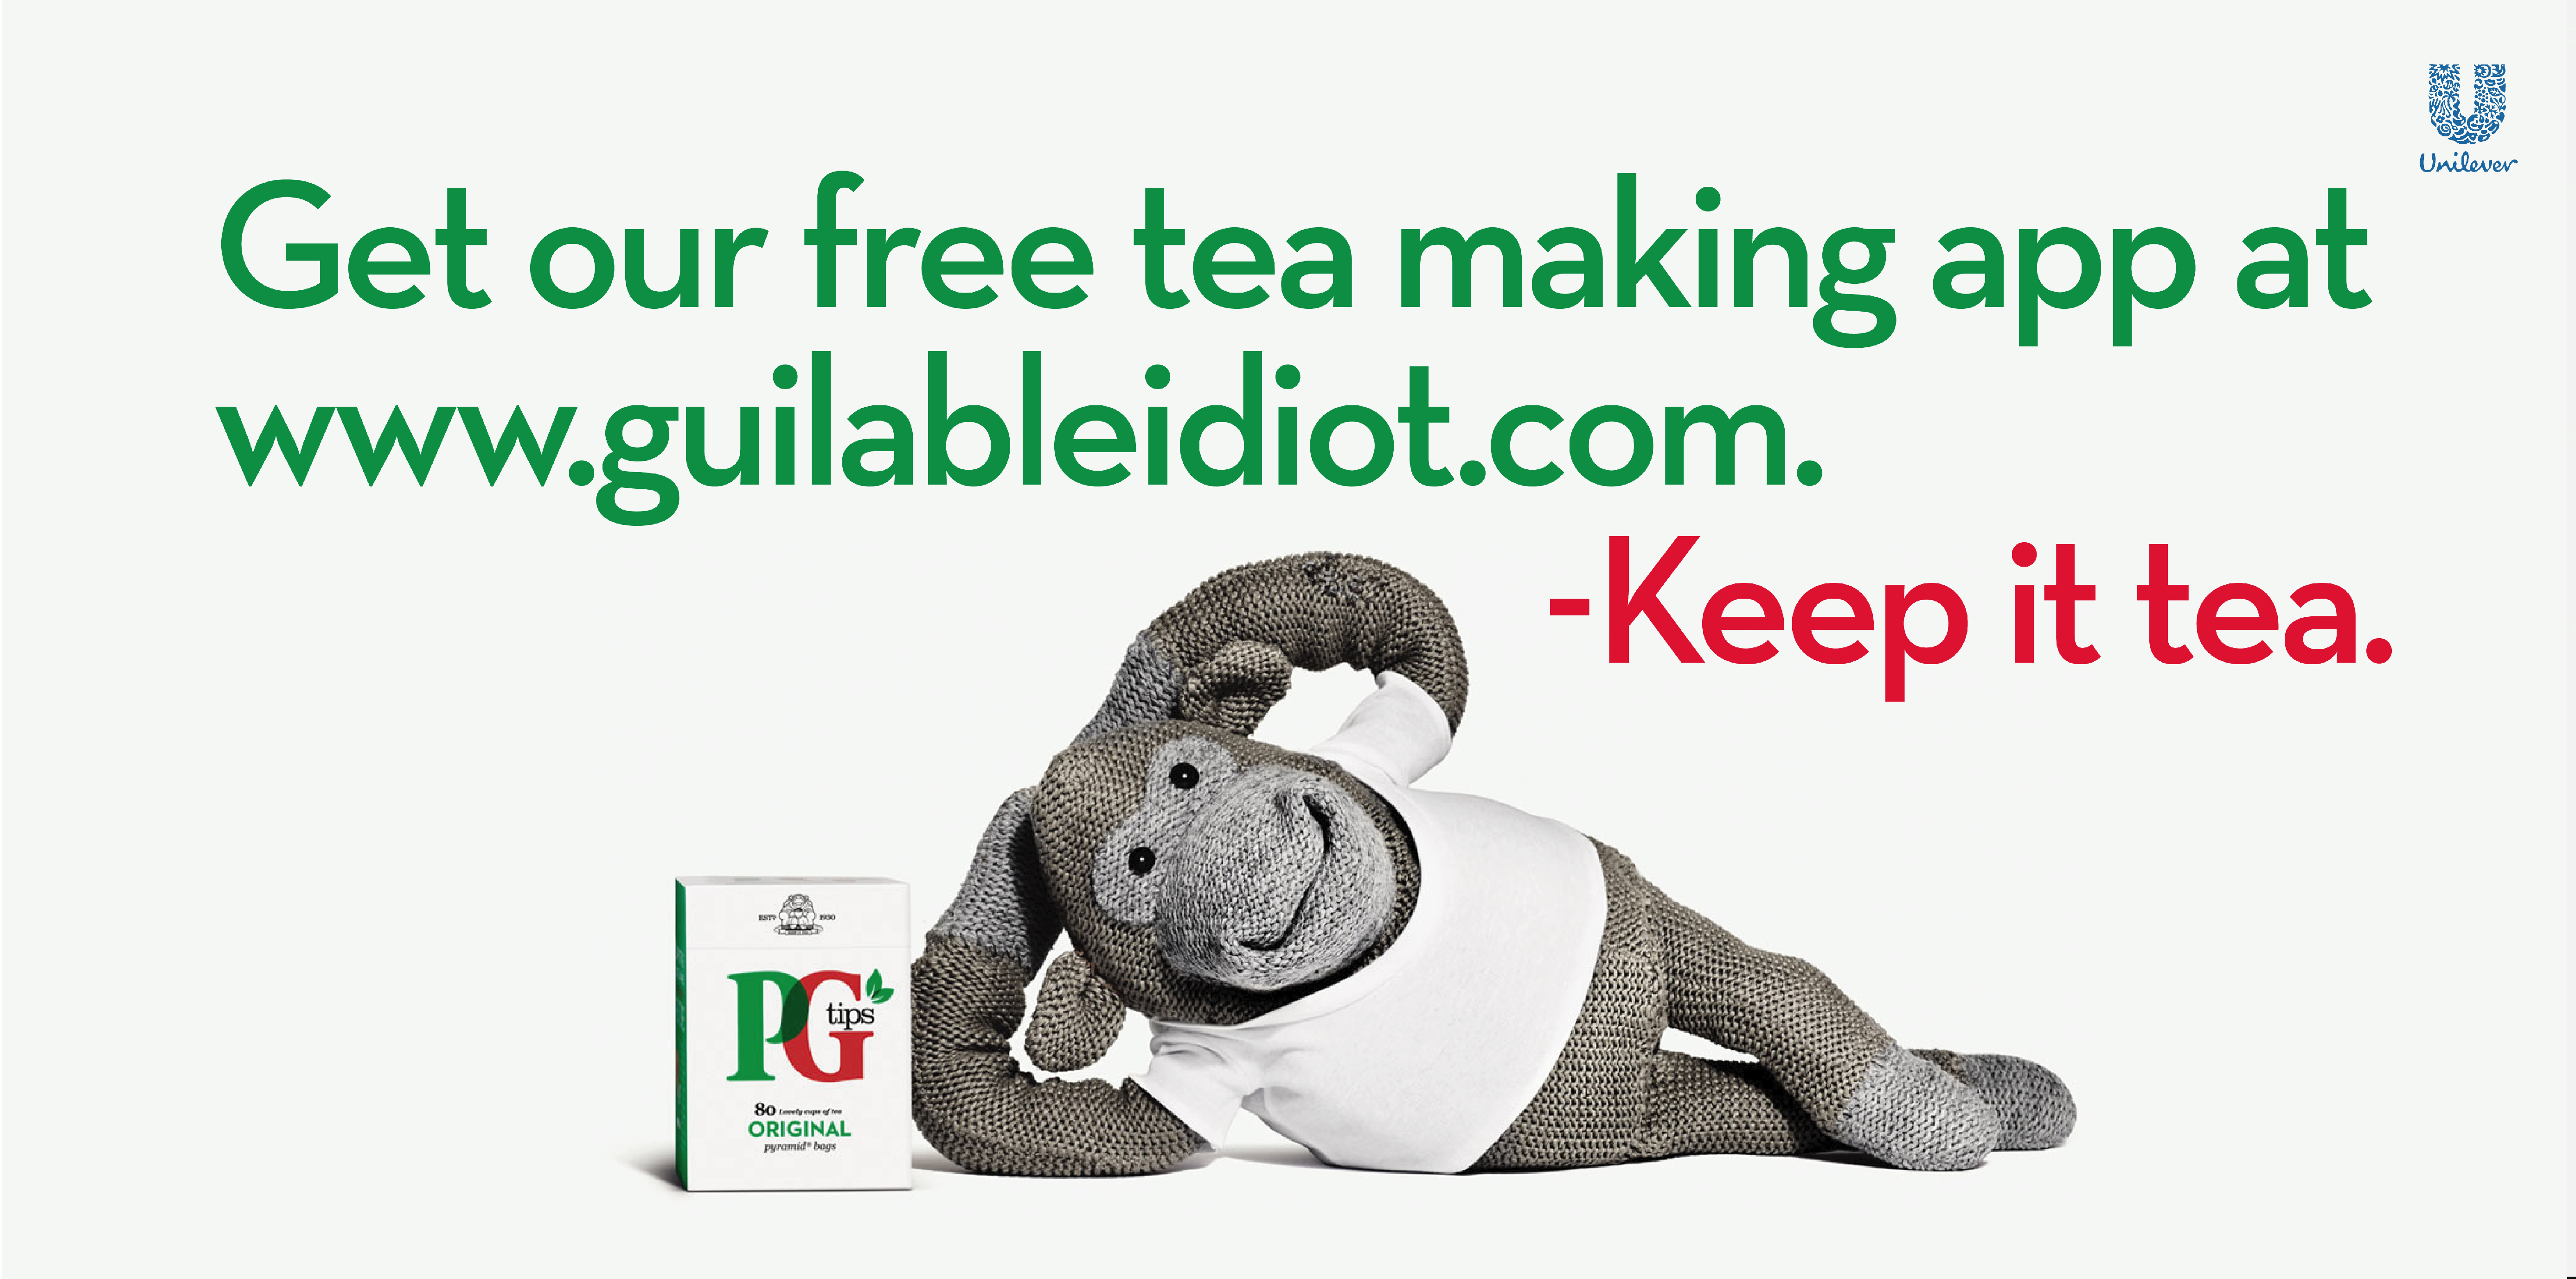 'Get Our' PG tips, Dave Dye, Mother-01